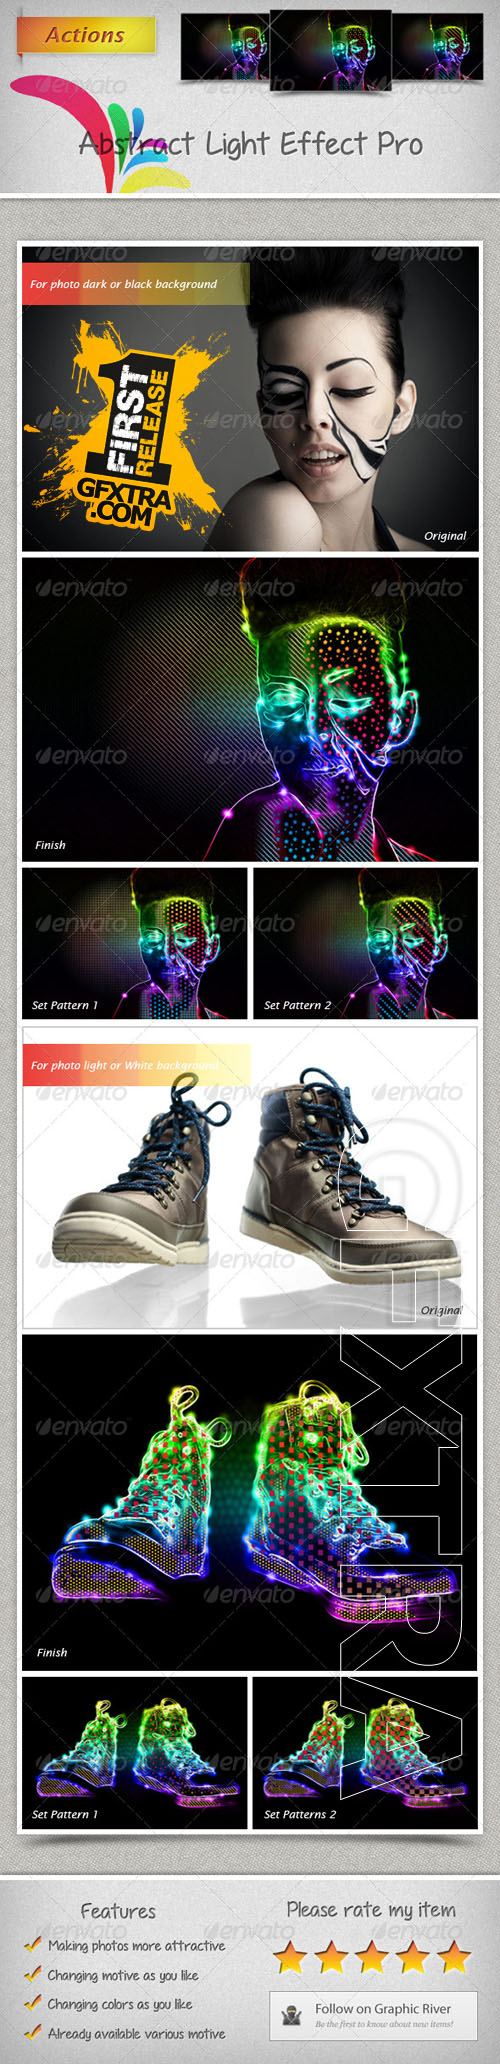 GraphicRiver - Abstract Light Effect Pro Actions 6341041